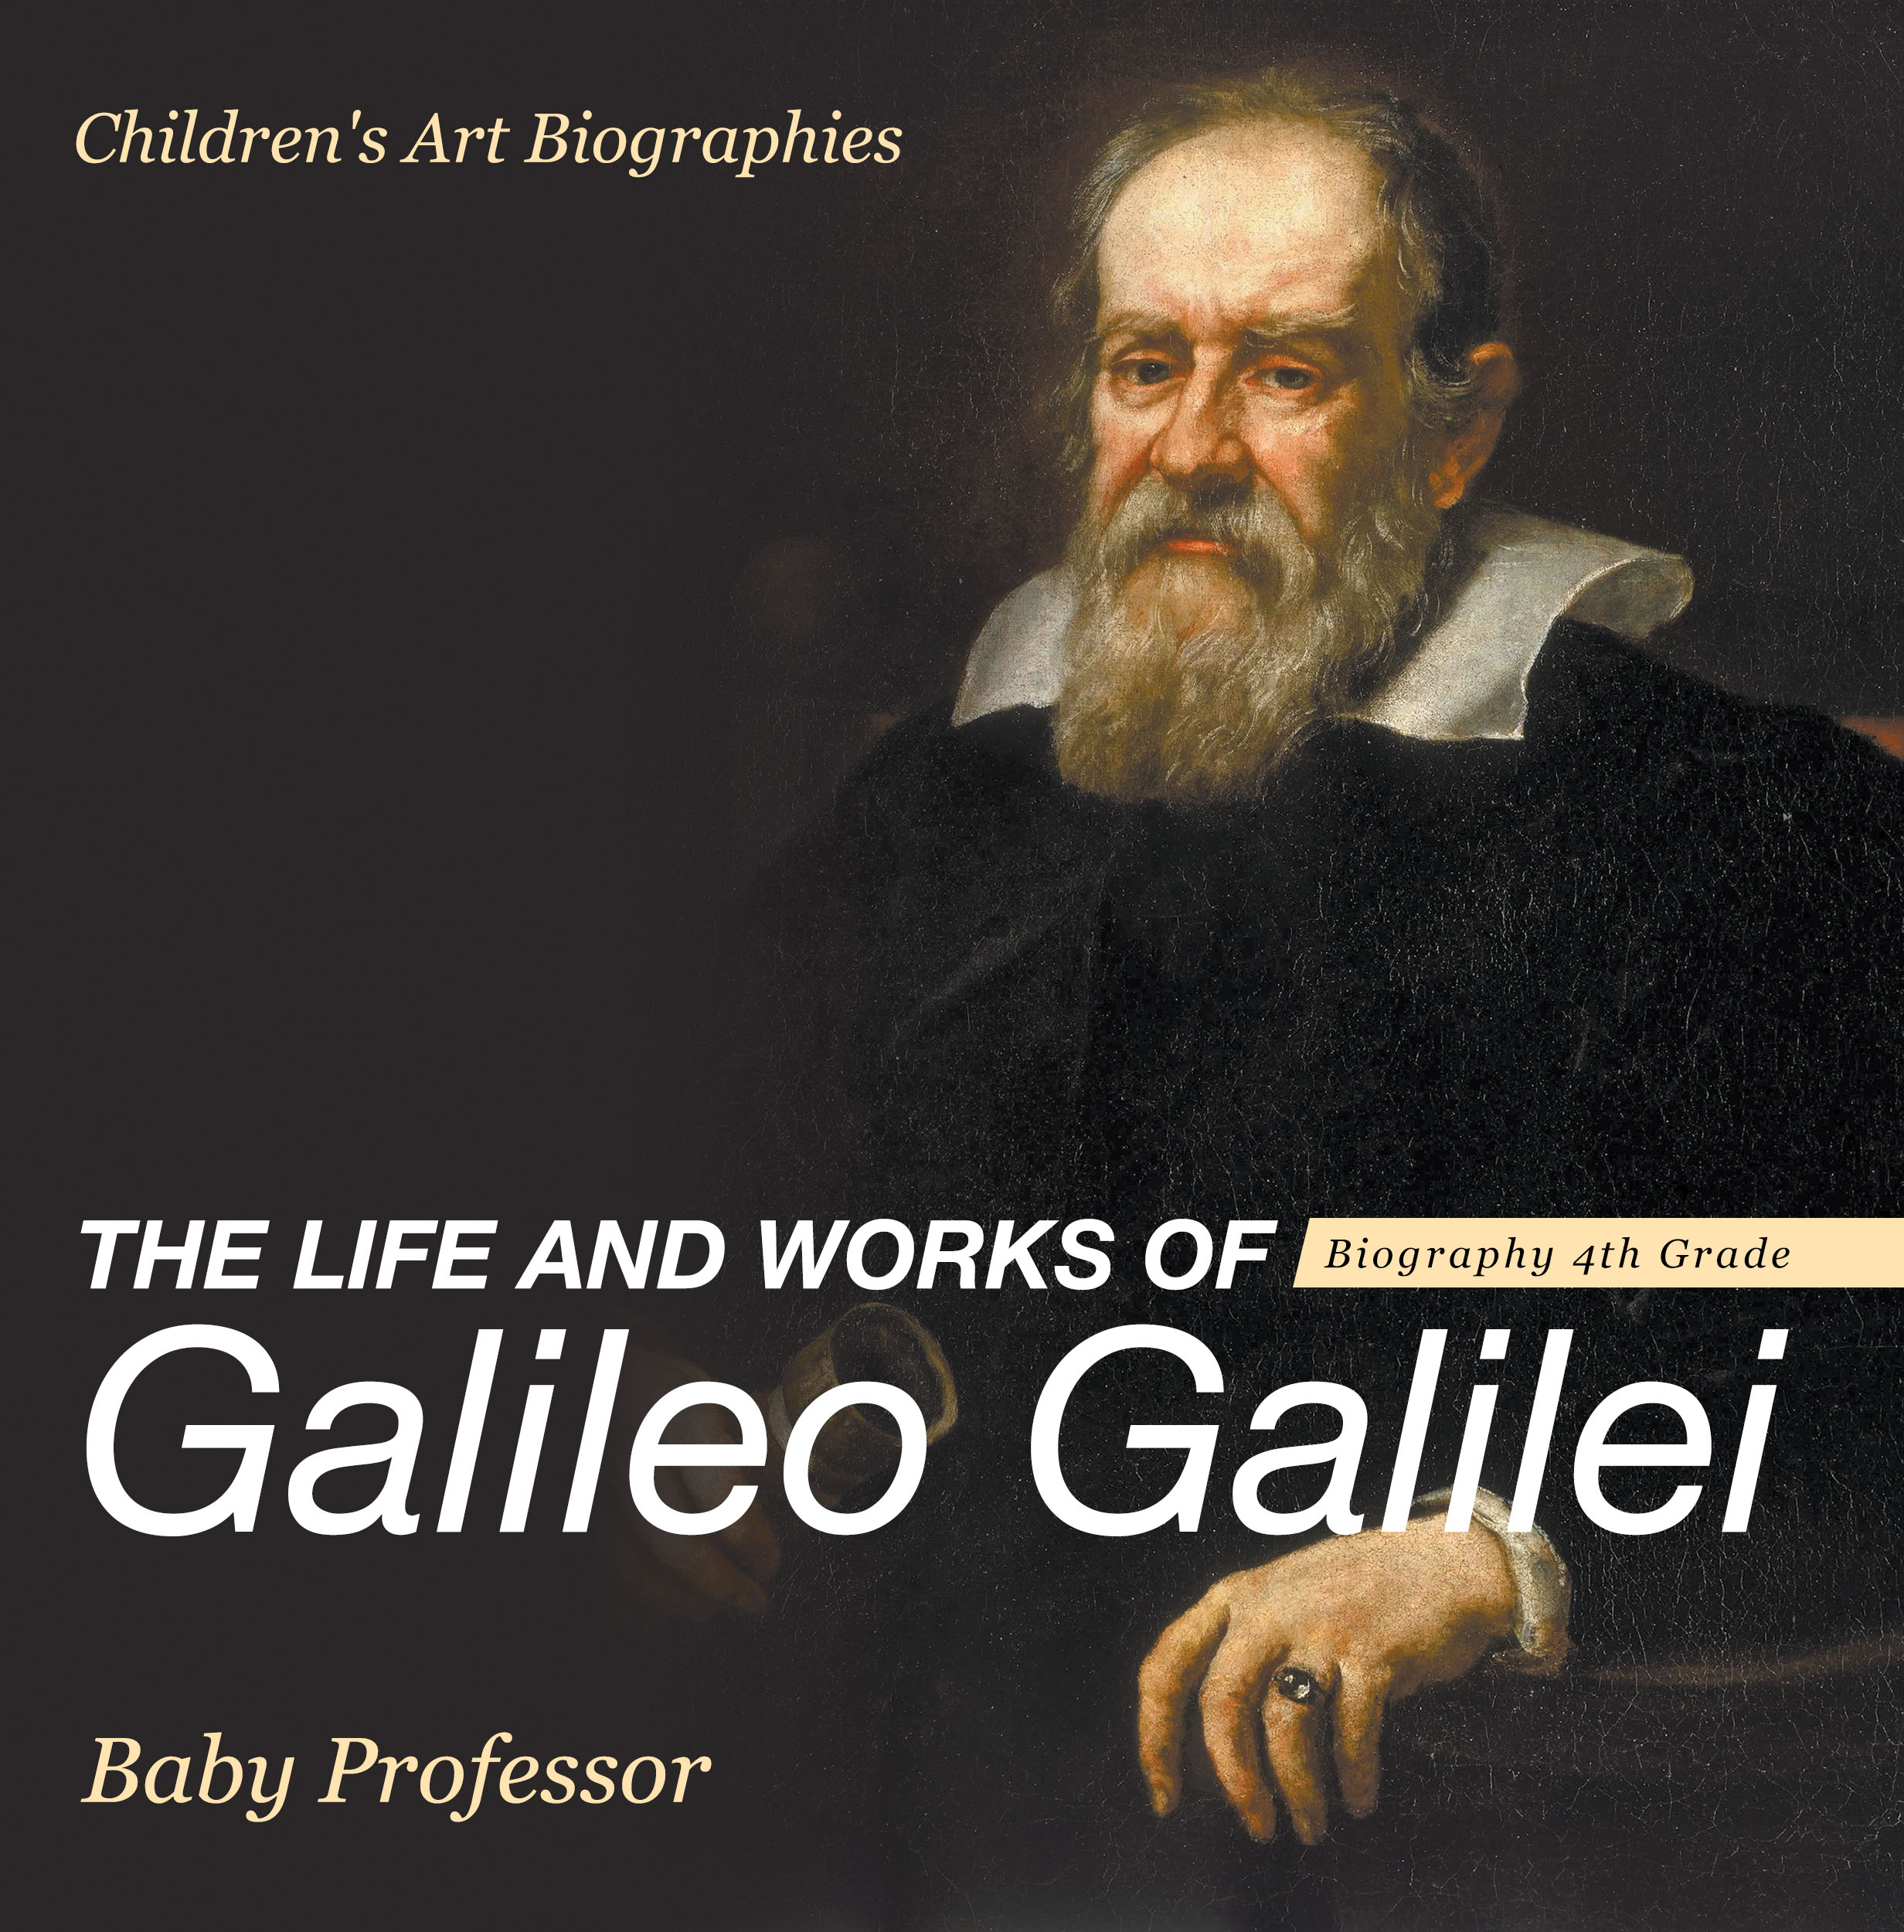 a summary of the life of galileo galilei Scene 1 in the year sixteen hundred and nine science' light began to shine at padua city, in a modest house, galileo galilei set out.